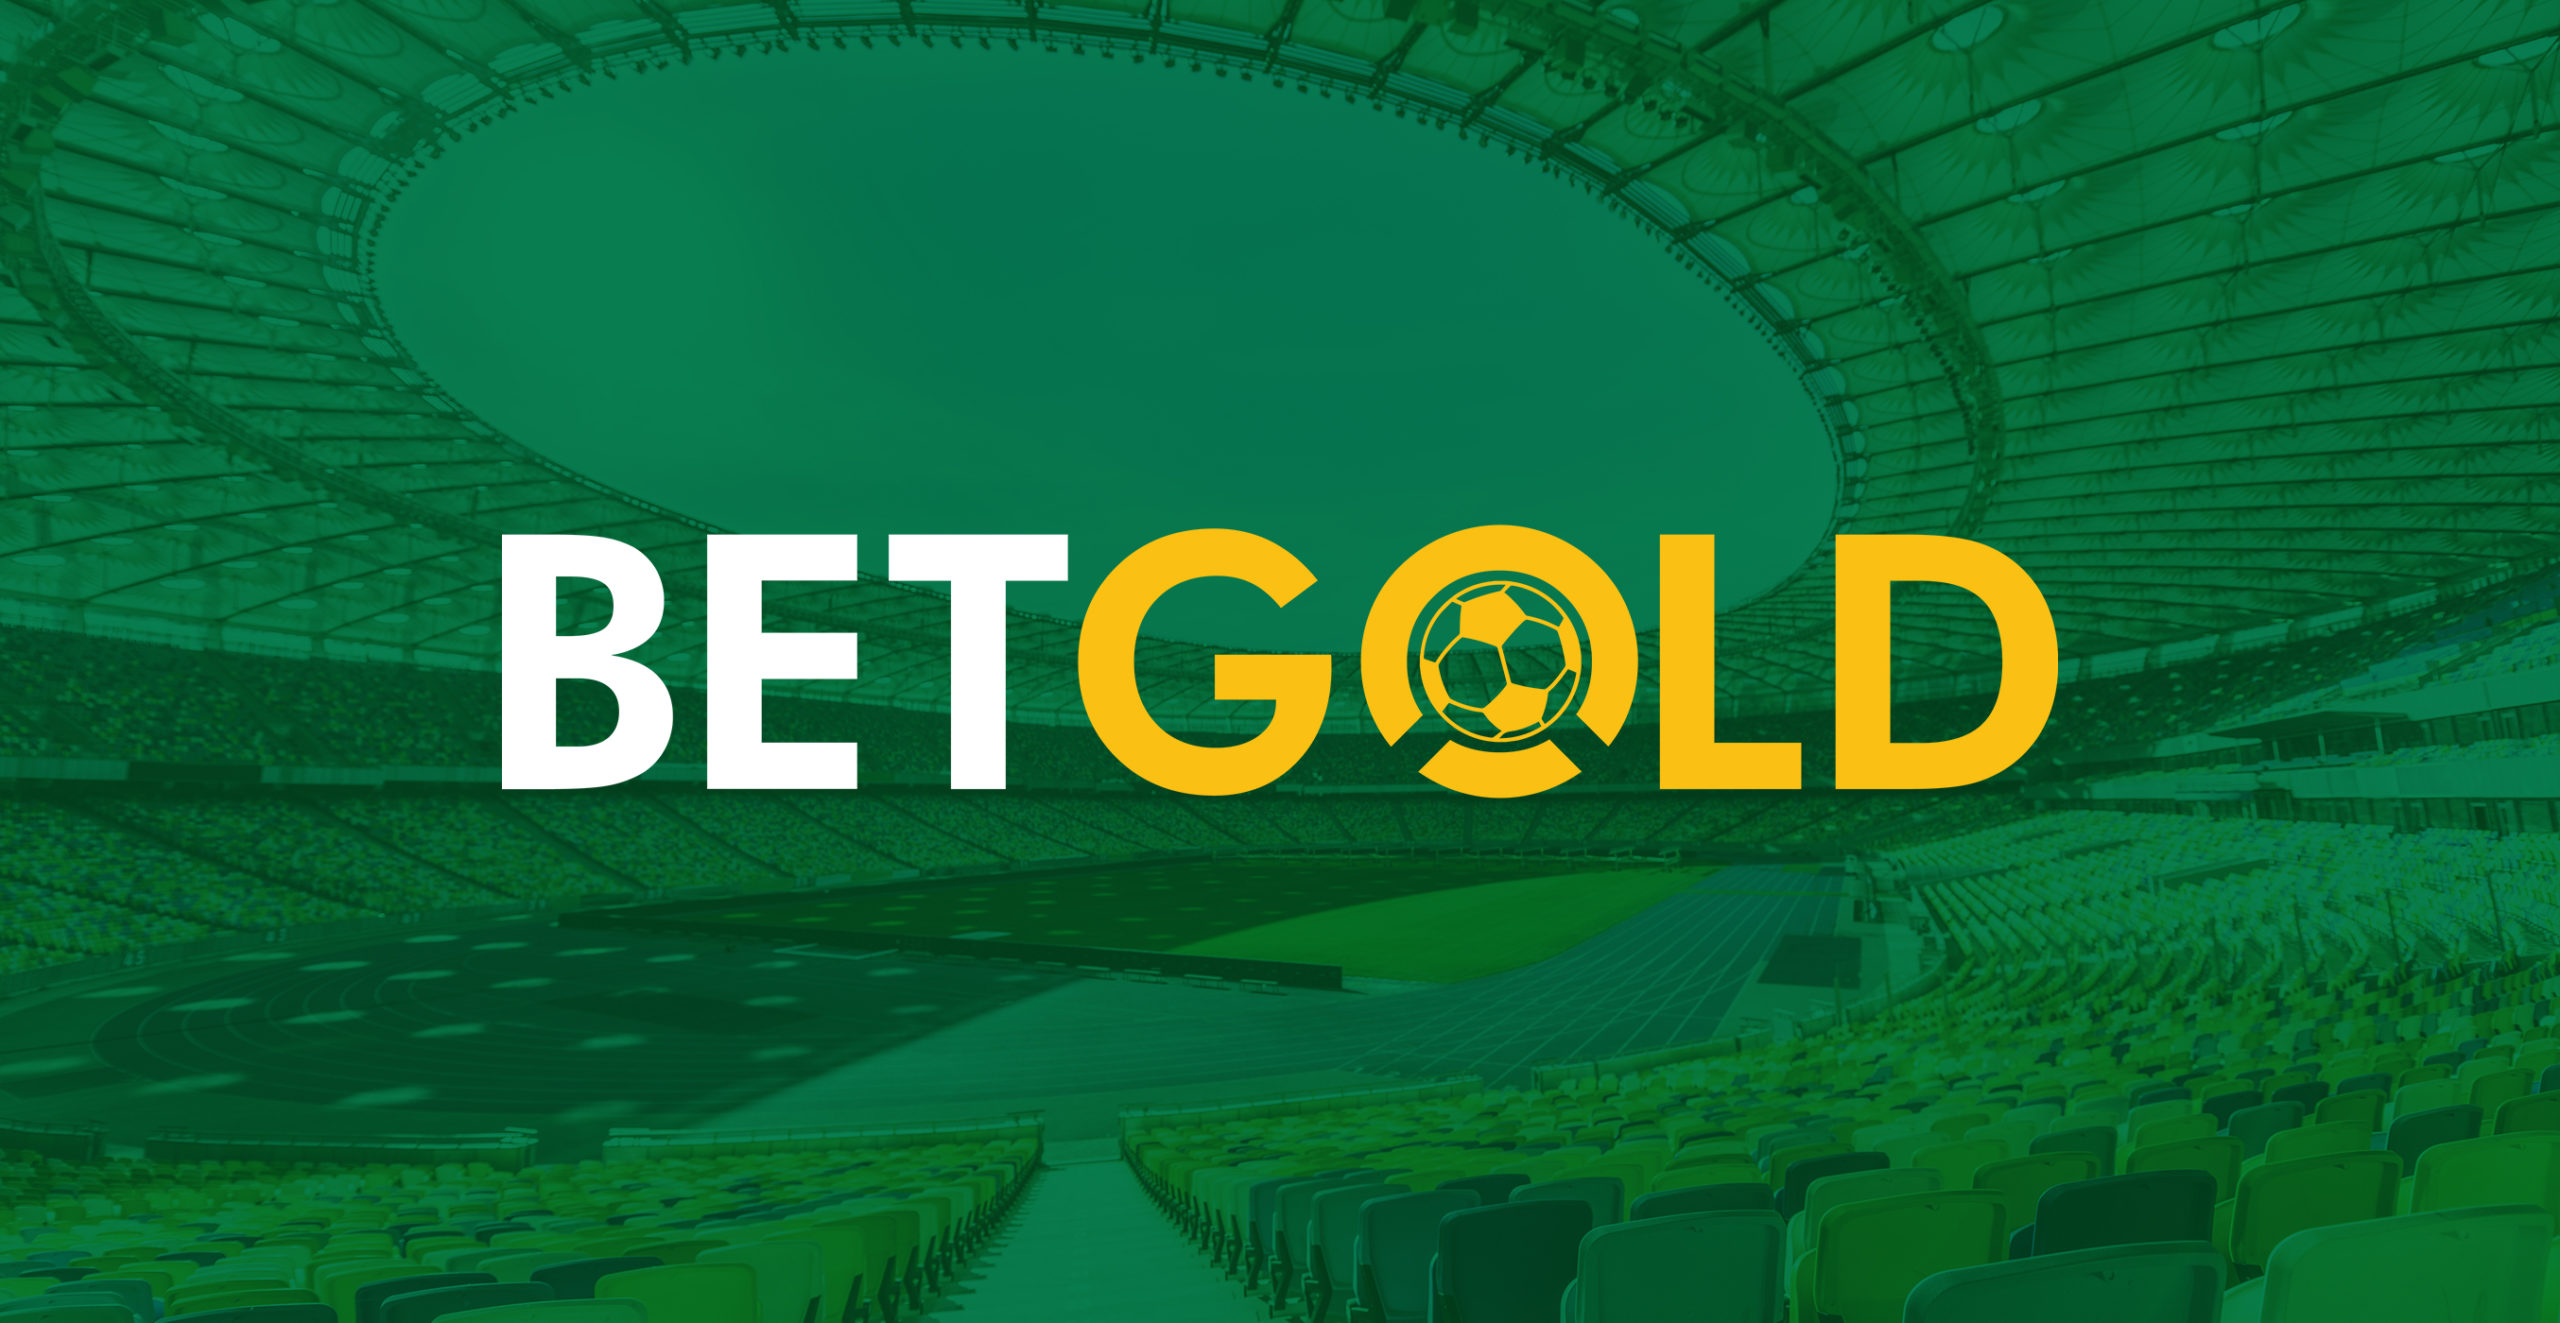 There are a lot og advantages in using Betgold for betting.